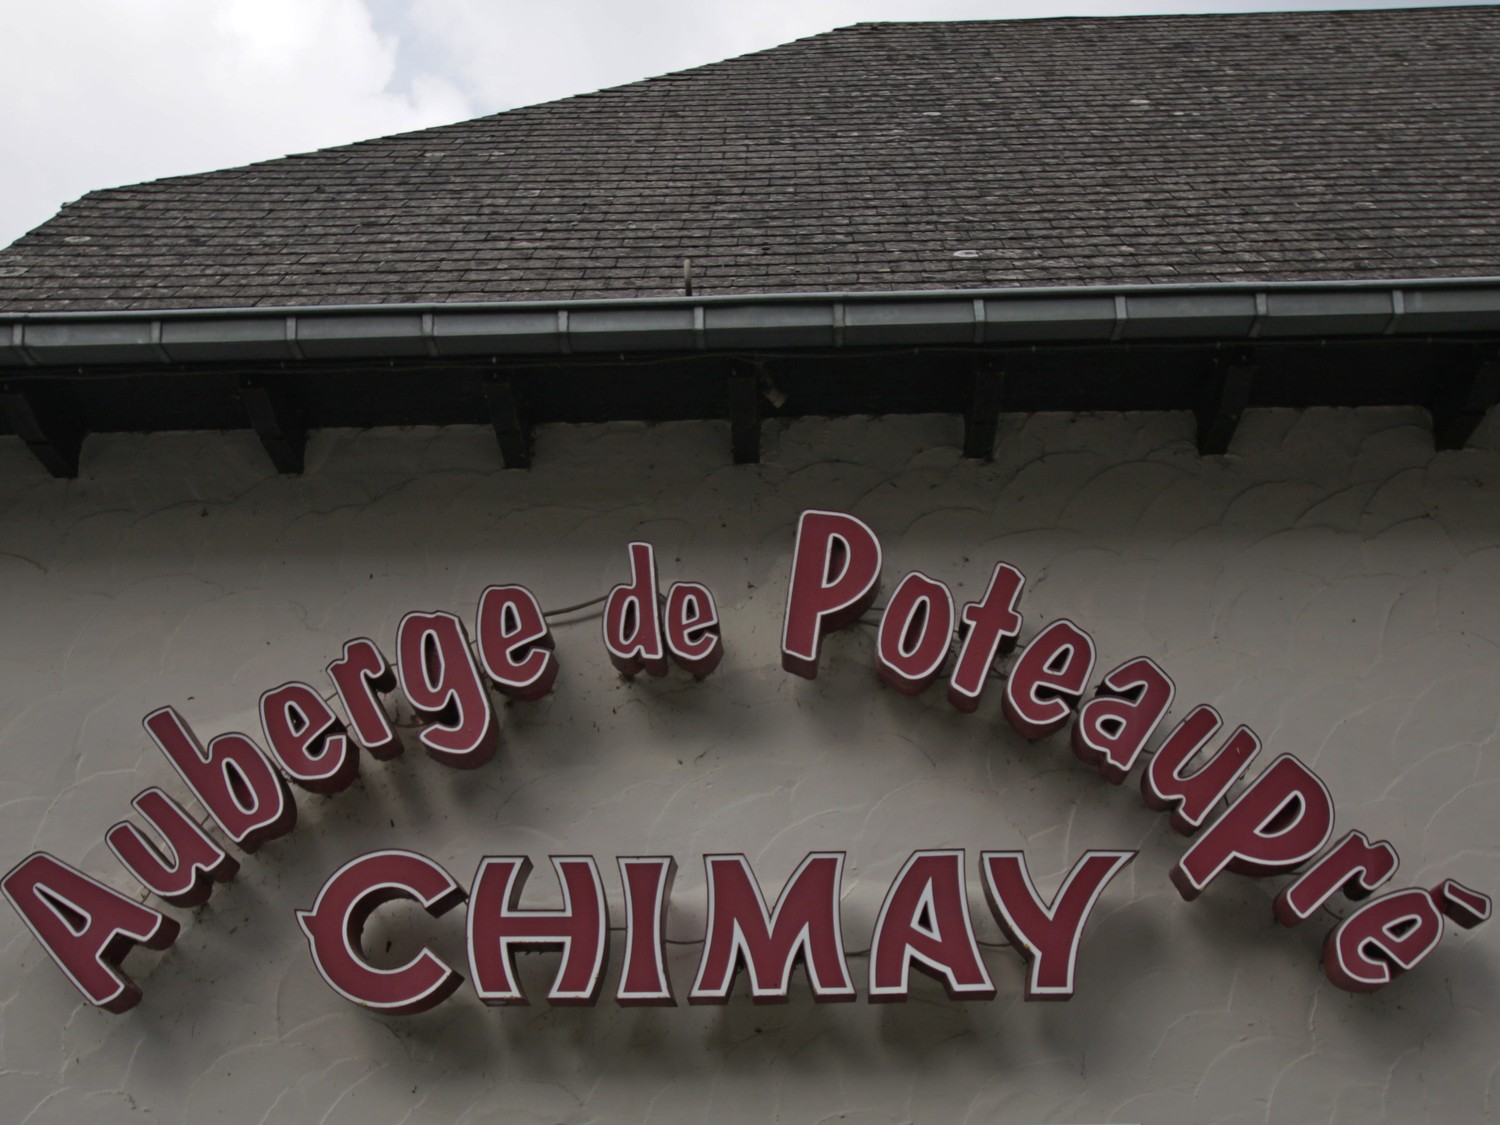 Chimay museum, restaurant and tasting room.